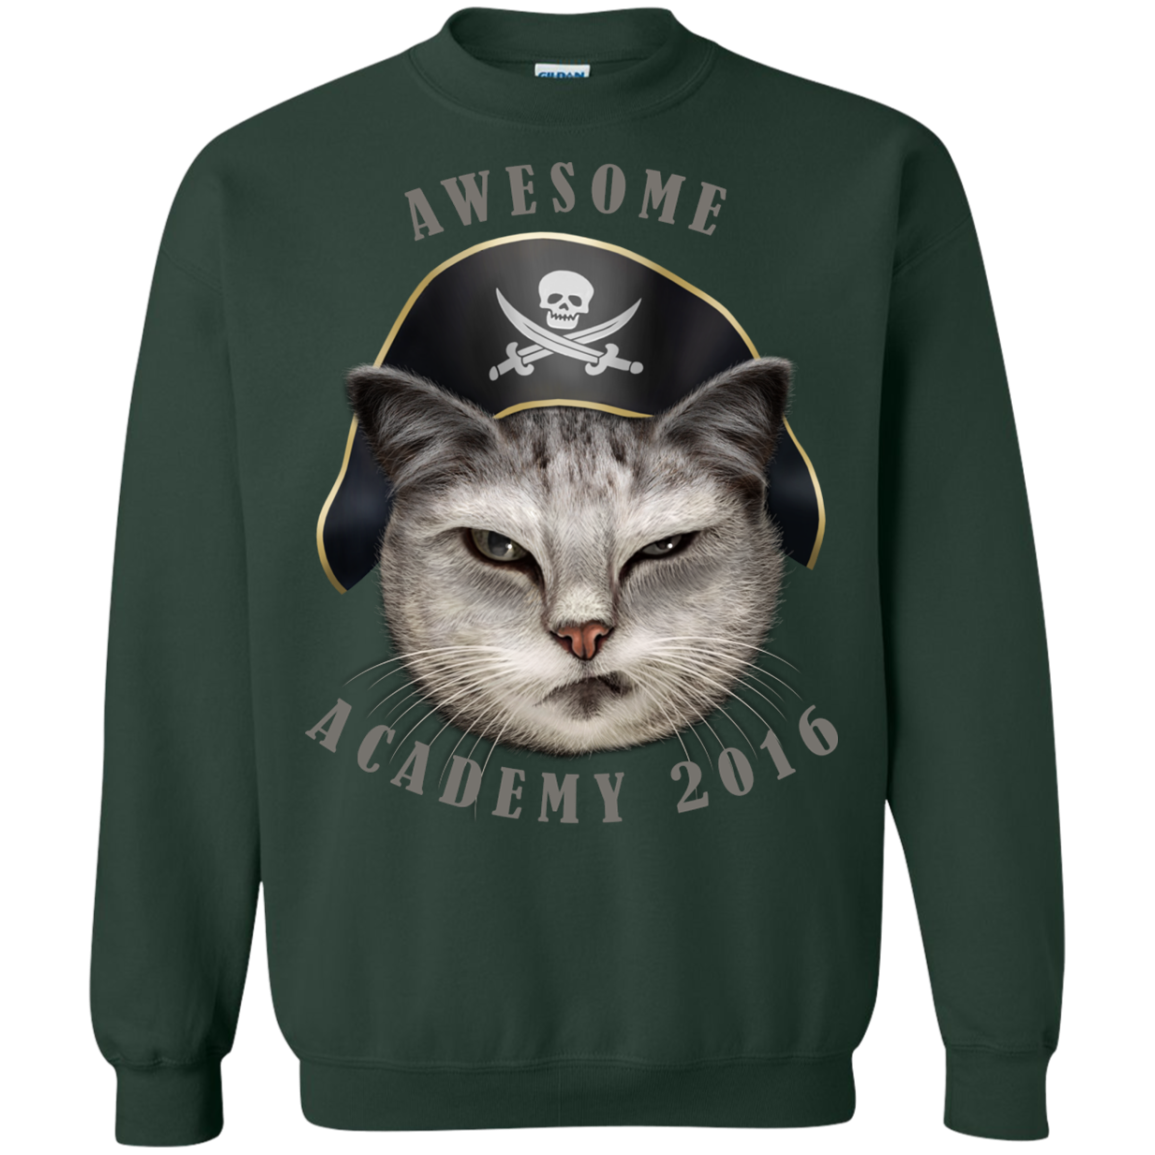 AWESOME ACADEMY Sweatshirt T-Shirt & Hoodie - The Sun Cat